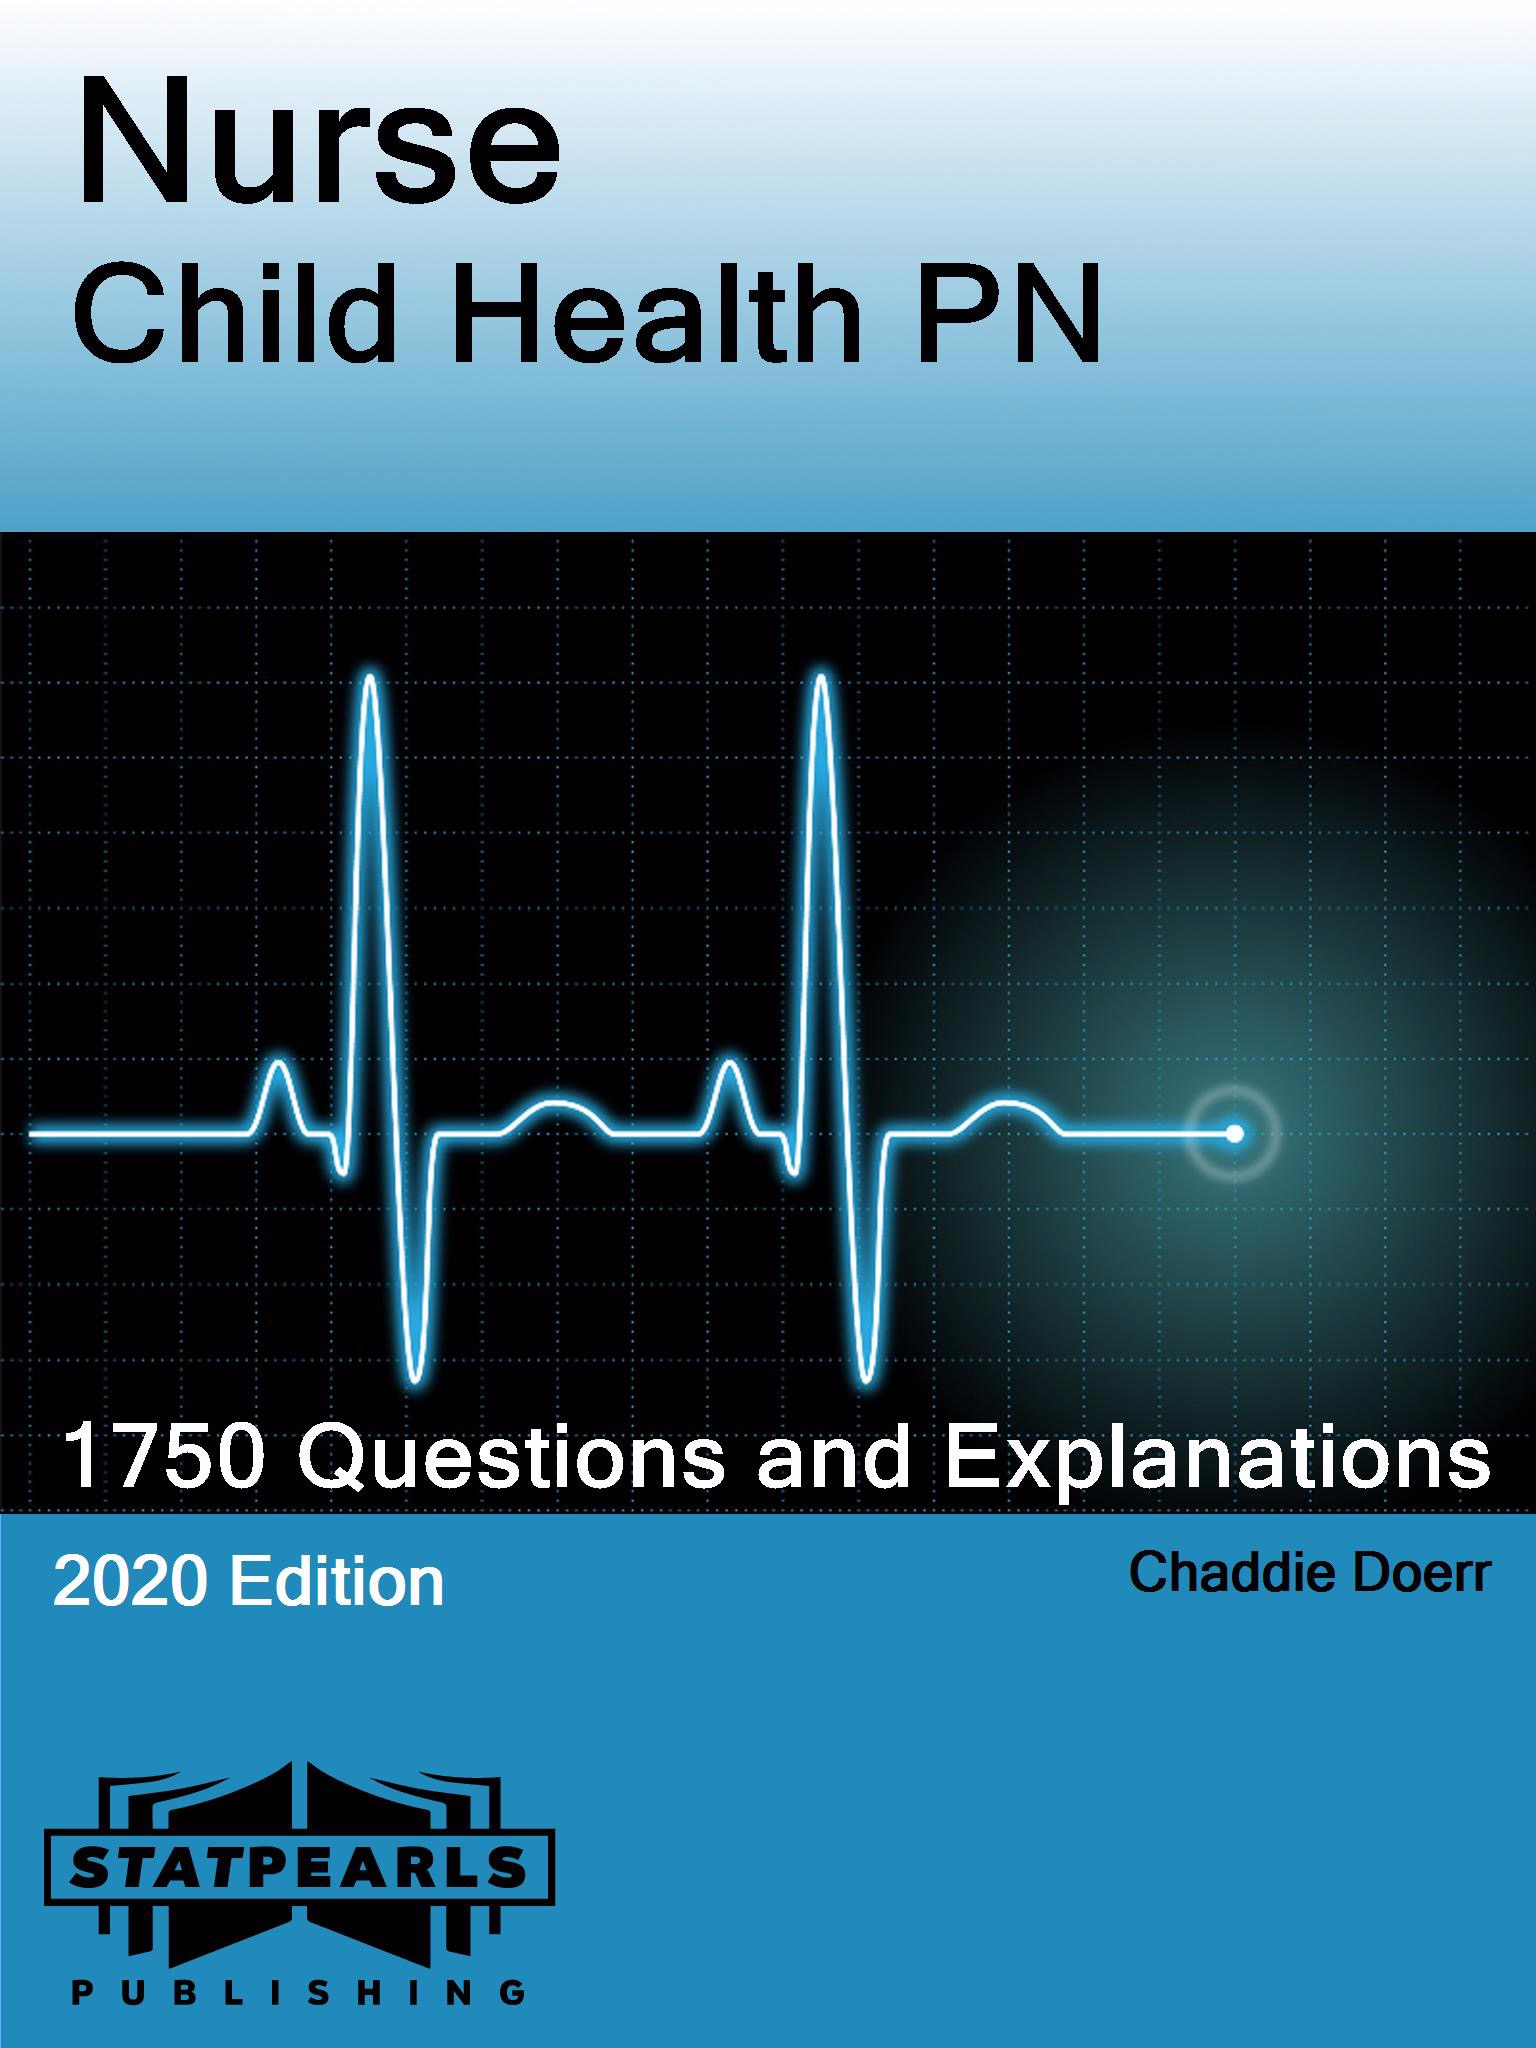 Nurse Child Health PN